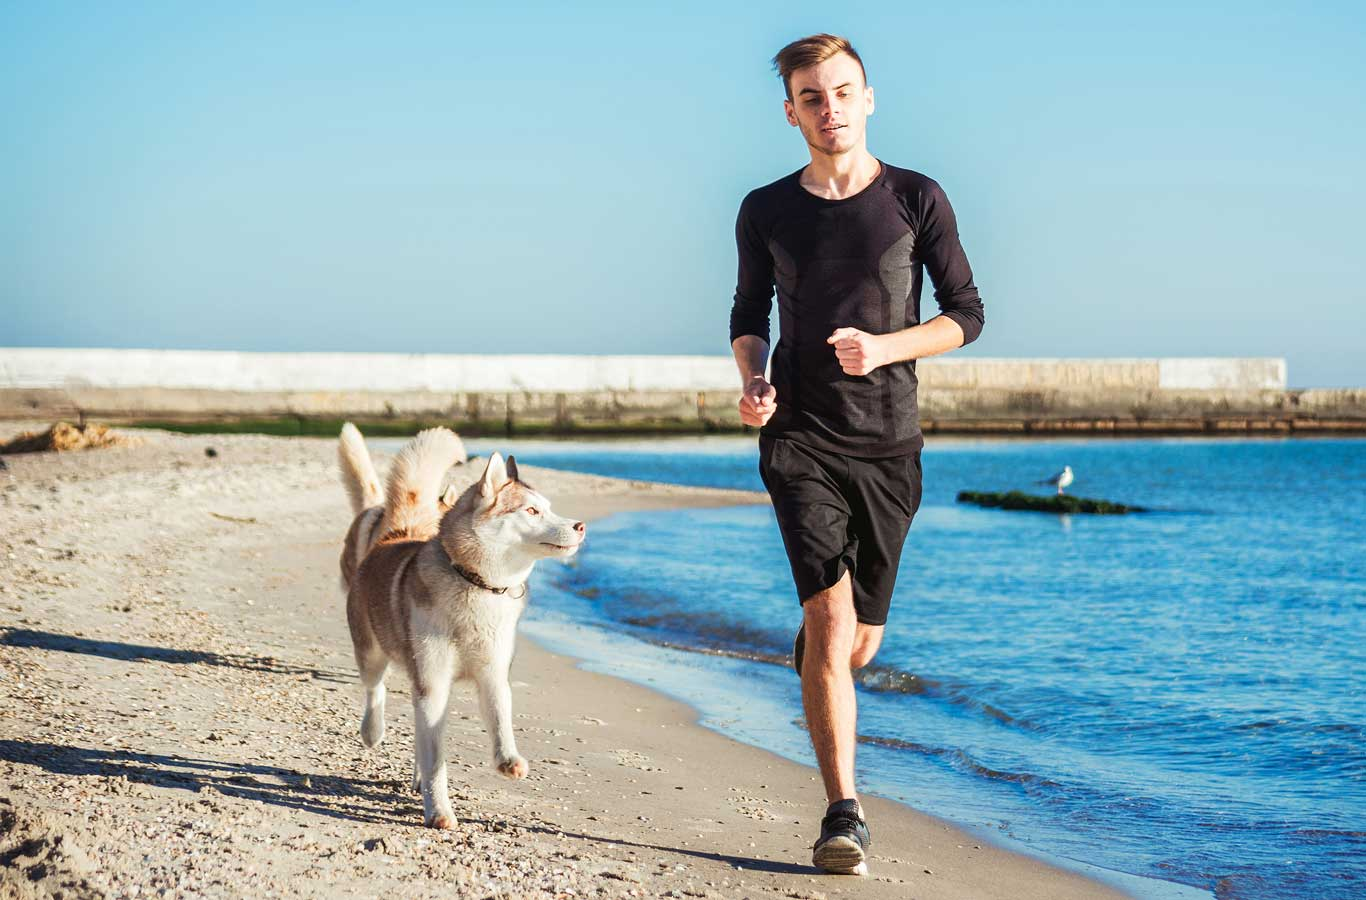 Man running with a dog on a beach